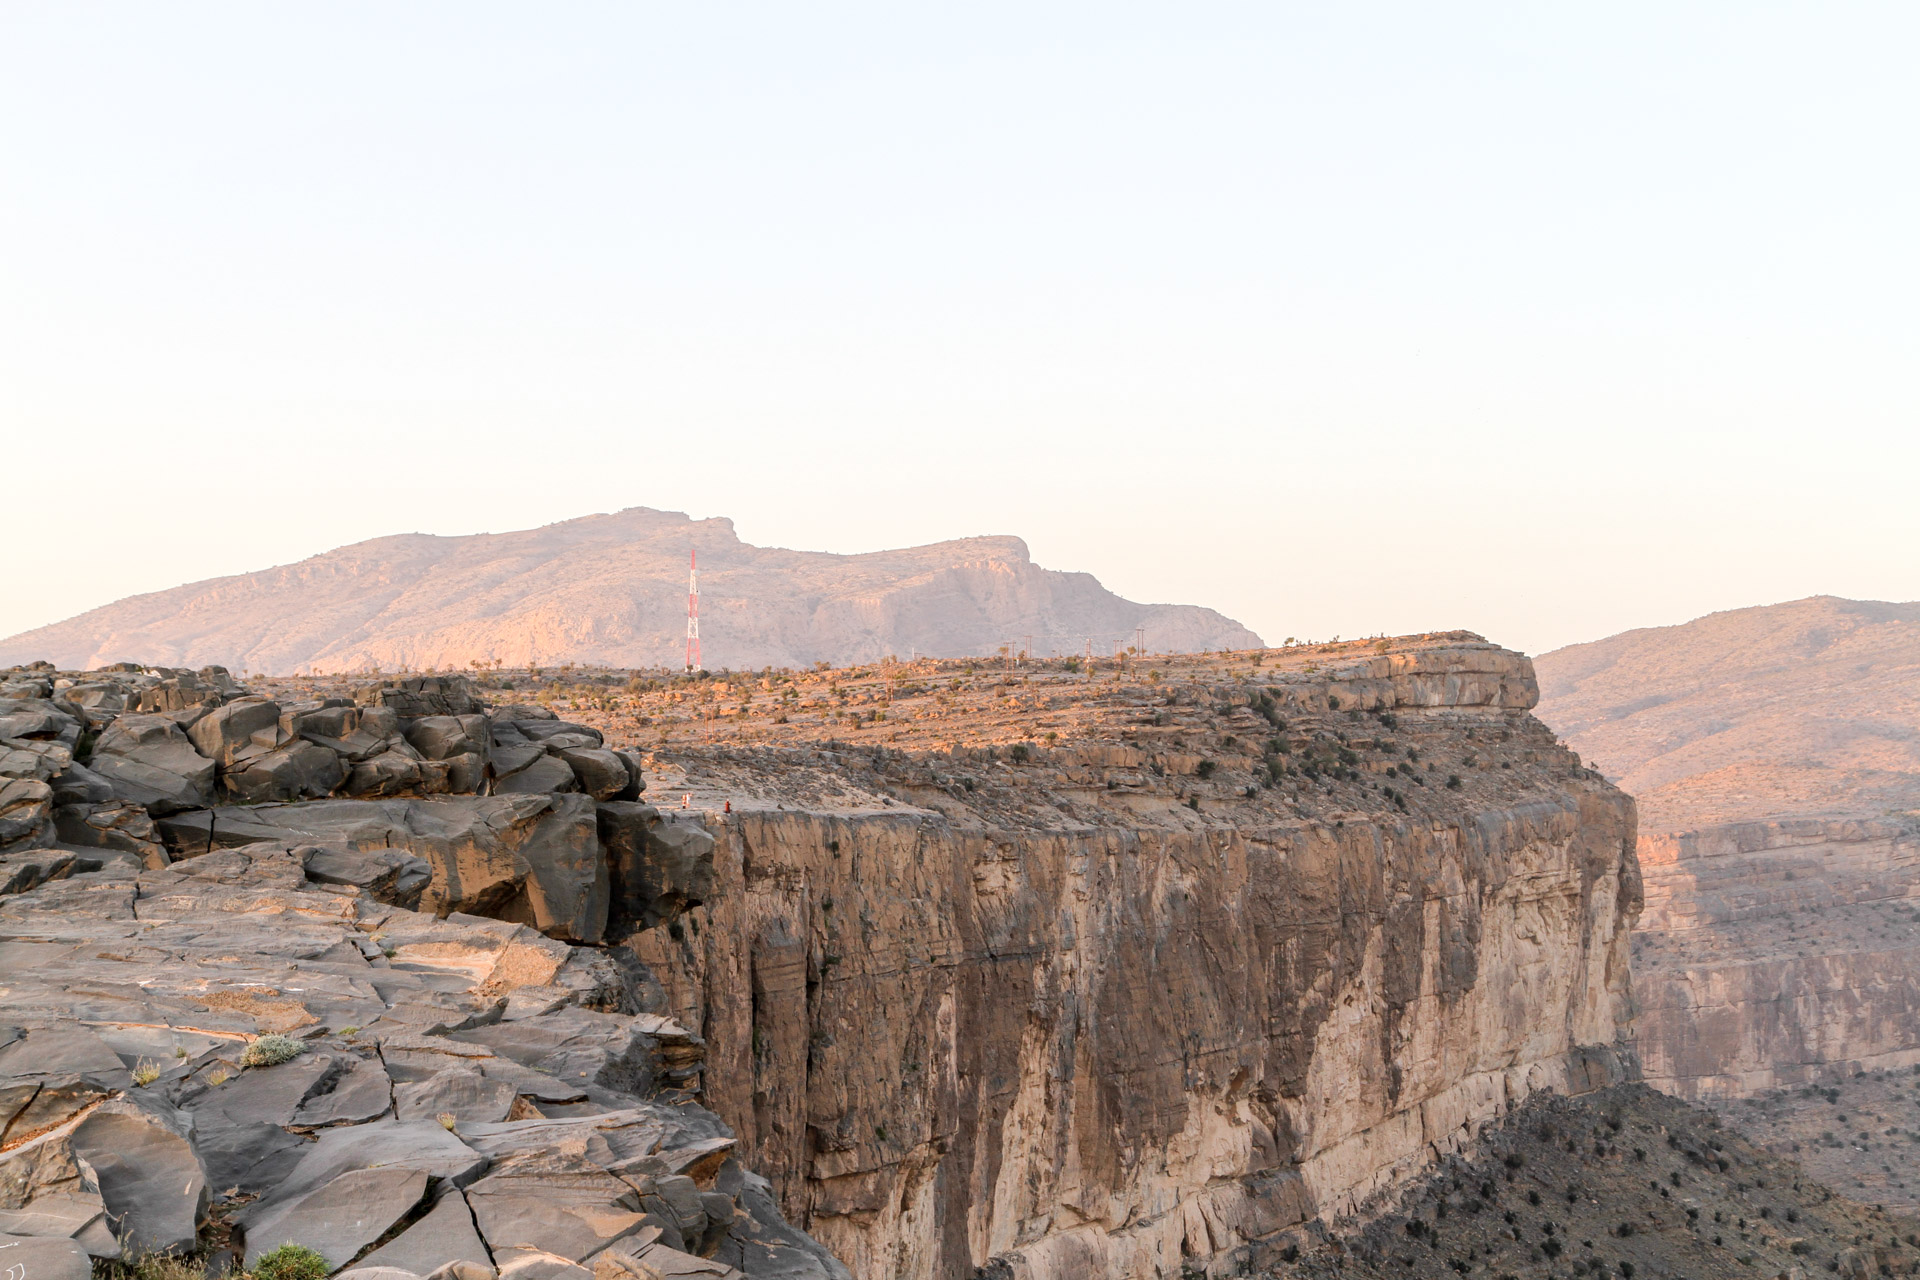 View of the Jebel Shams cliff from our camping place.